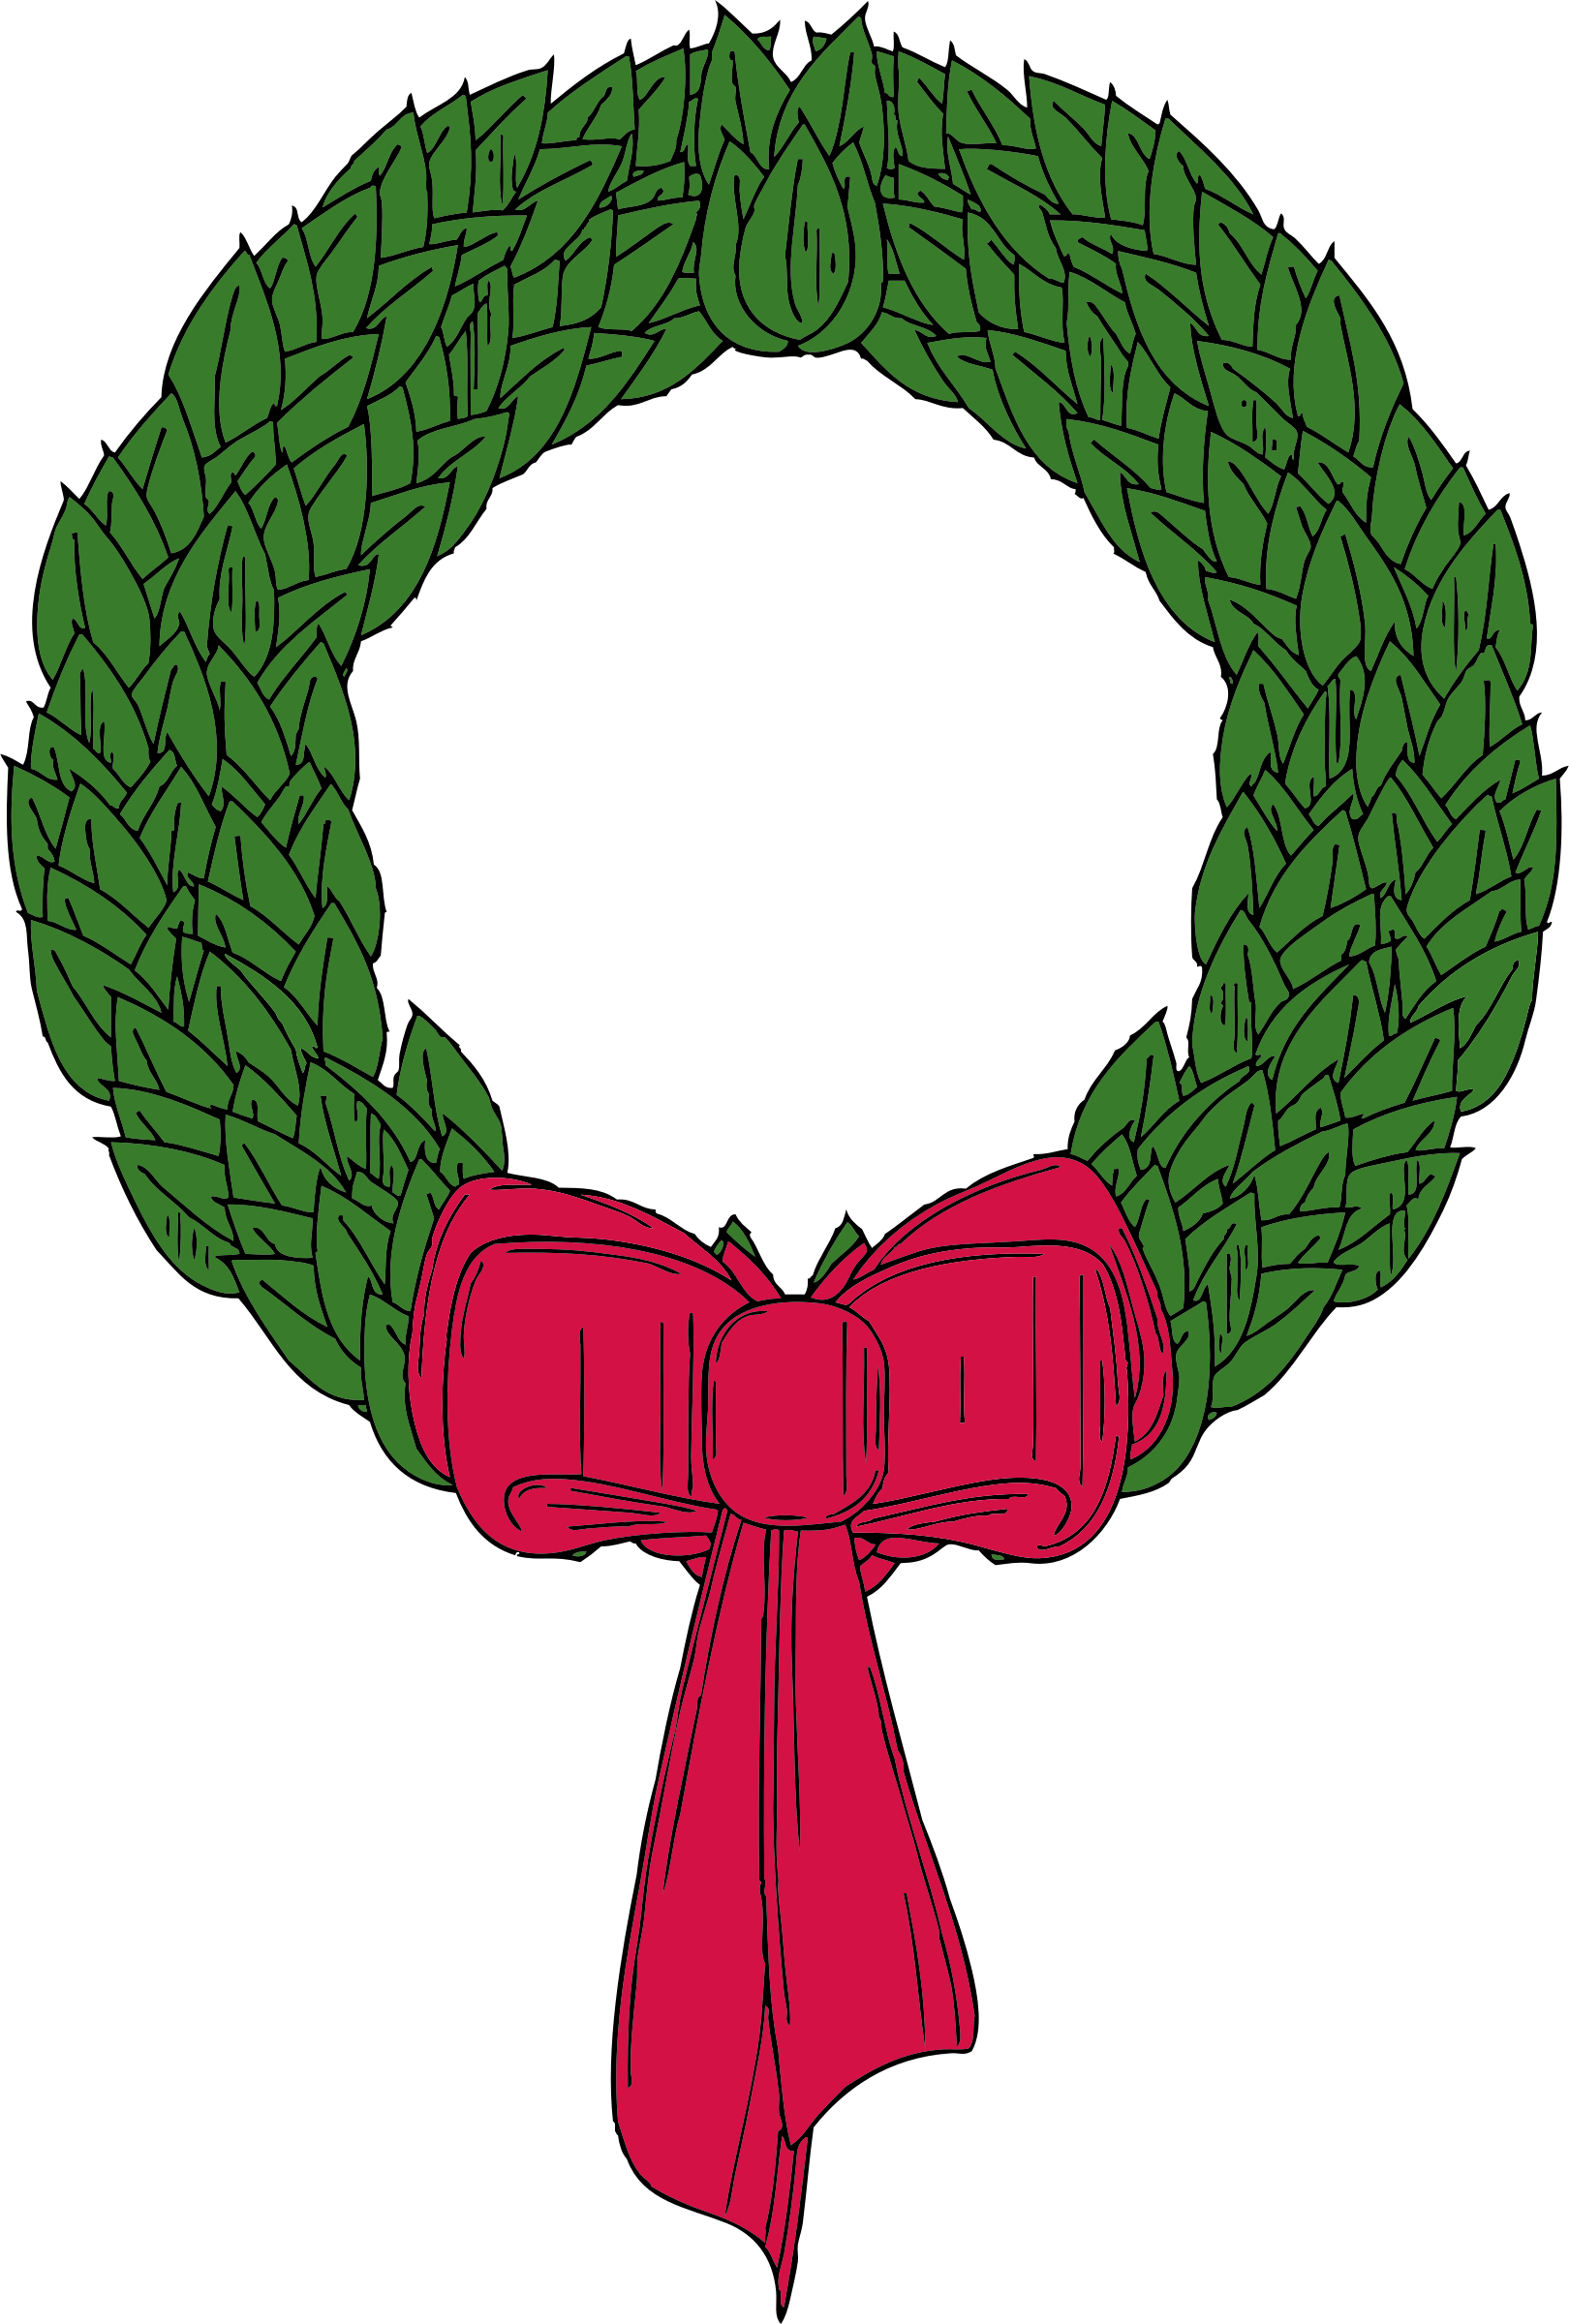 Christmas Wreath Png.File Christmas Wreath Png Wikipedia